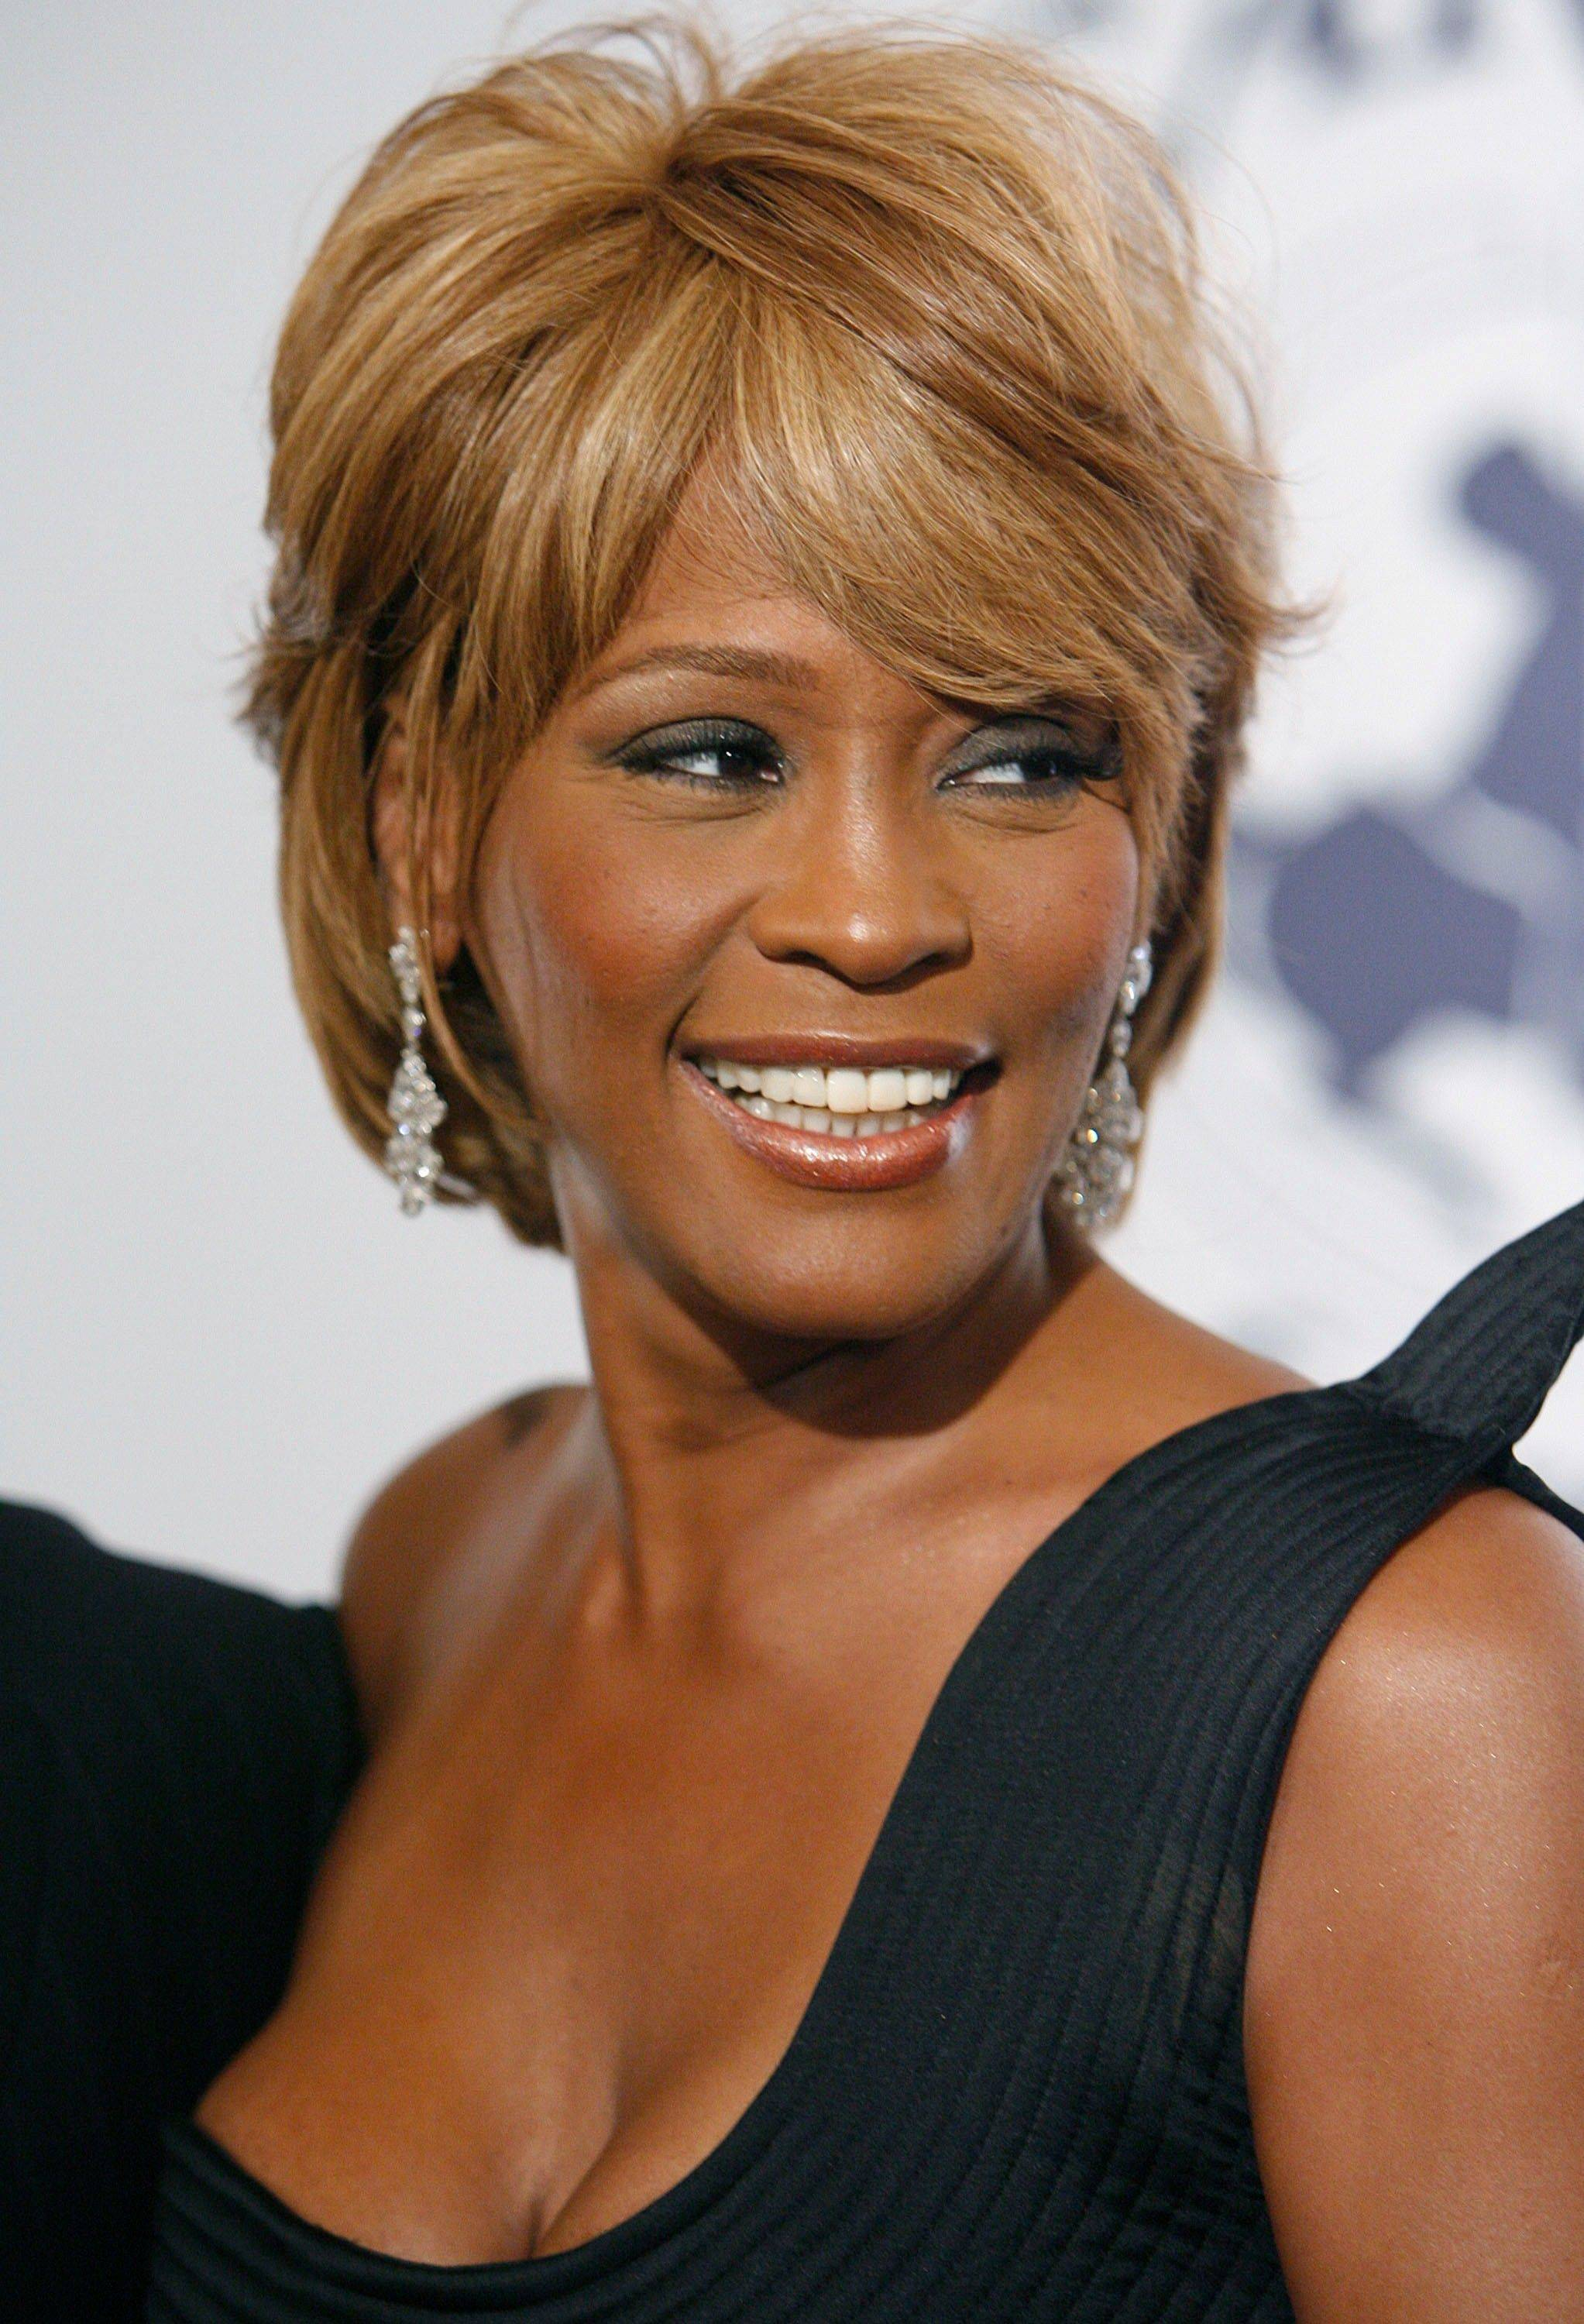 The Los Angeles County coroner's office has issued subpoenas for medical and pharmacy records from Whitney Houston's doctors and medical providers, which is standard procedure in such investigations, an official said.